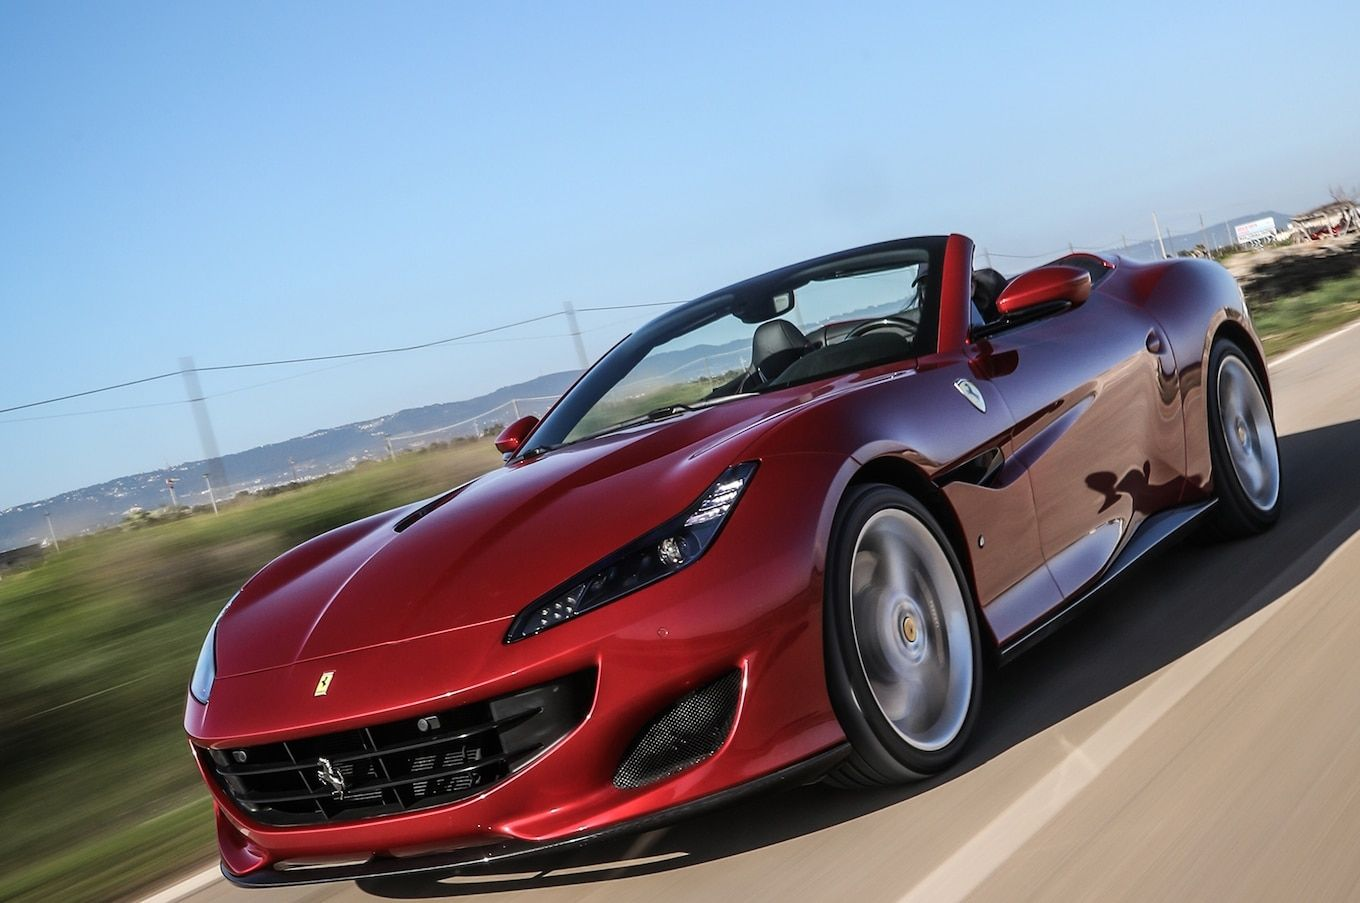 2019 Ferrari Portofino Blue Car Wallpaper 4k Ferrari Portofino Car